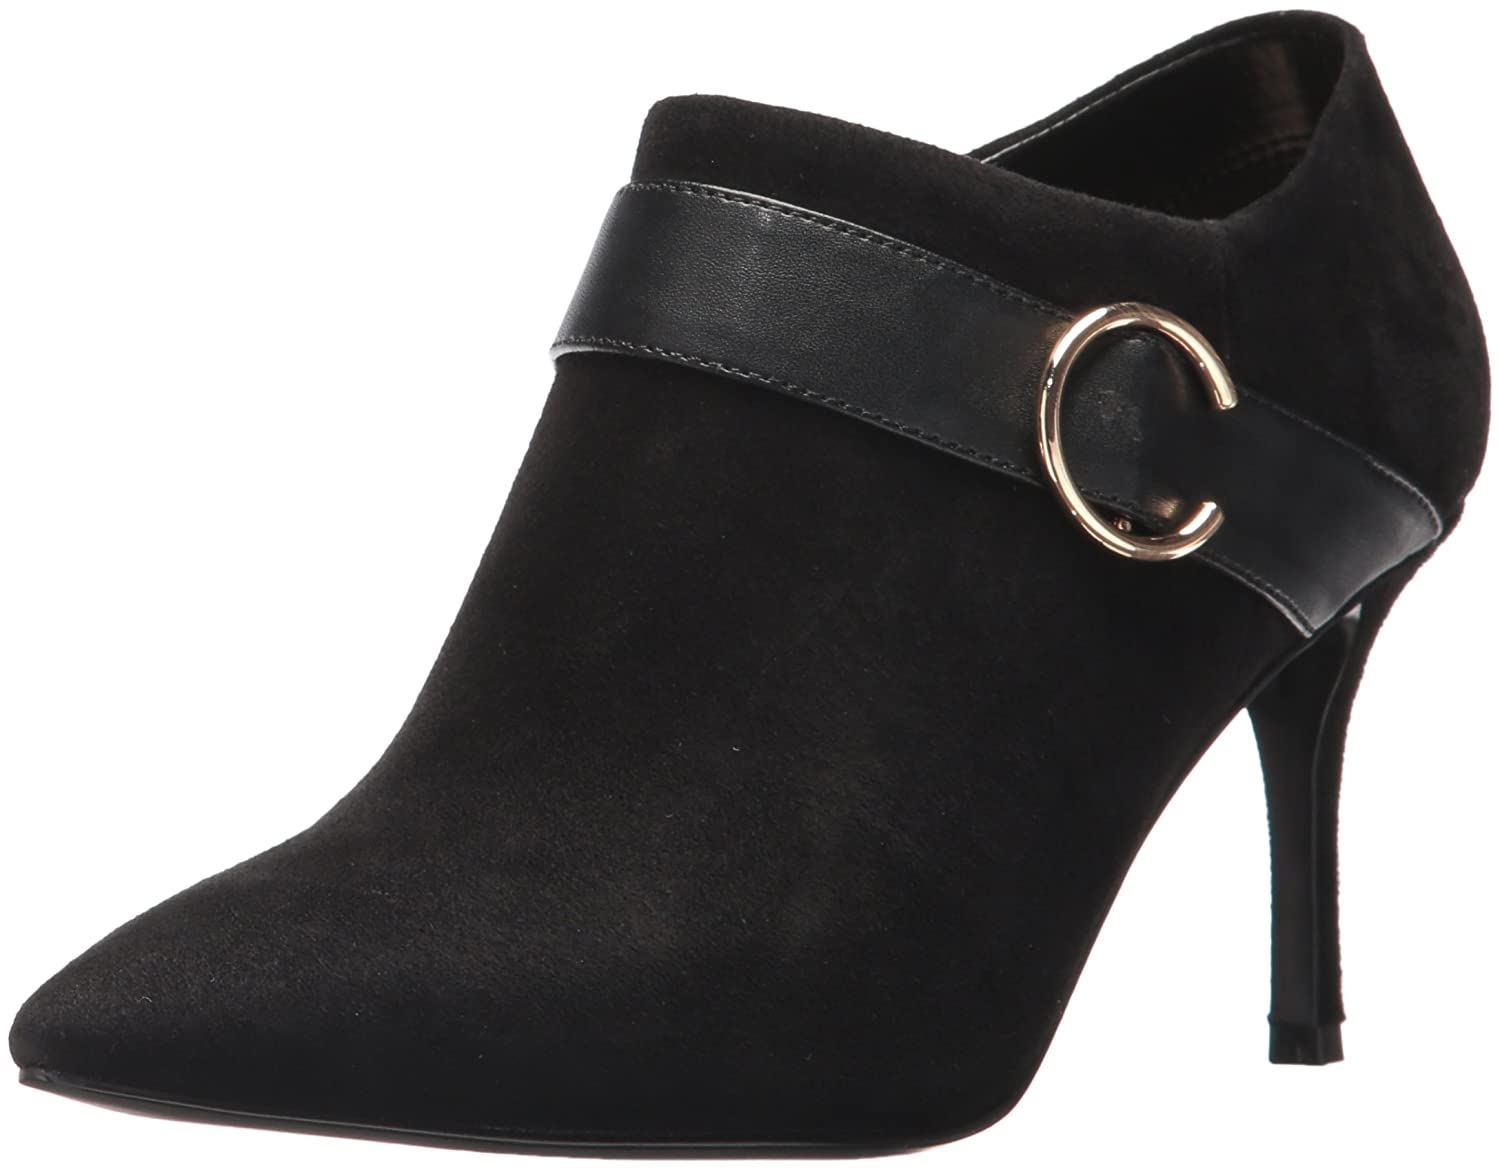 Nine West Women's Megaera Ankle Boot B01N80QXCJ 8.5 B(M) US|Black Suede